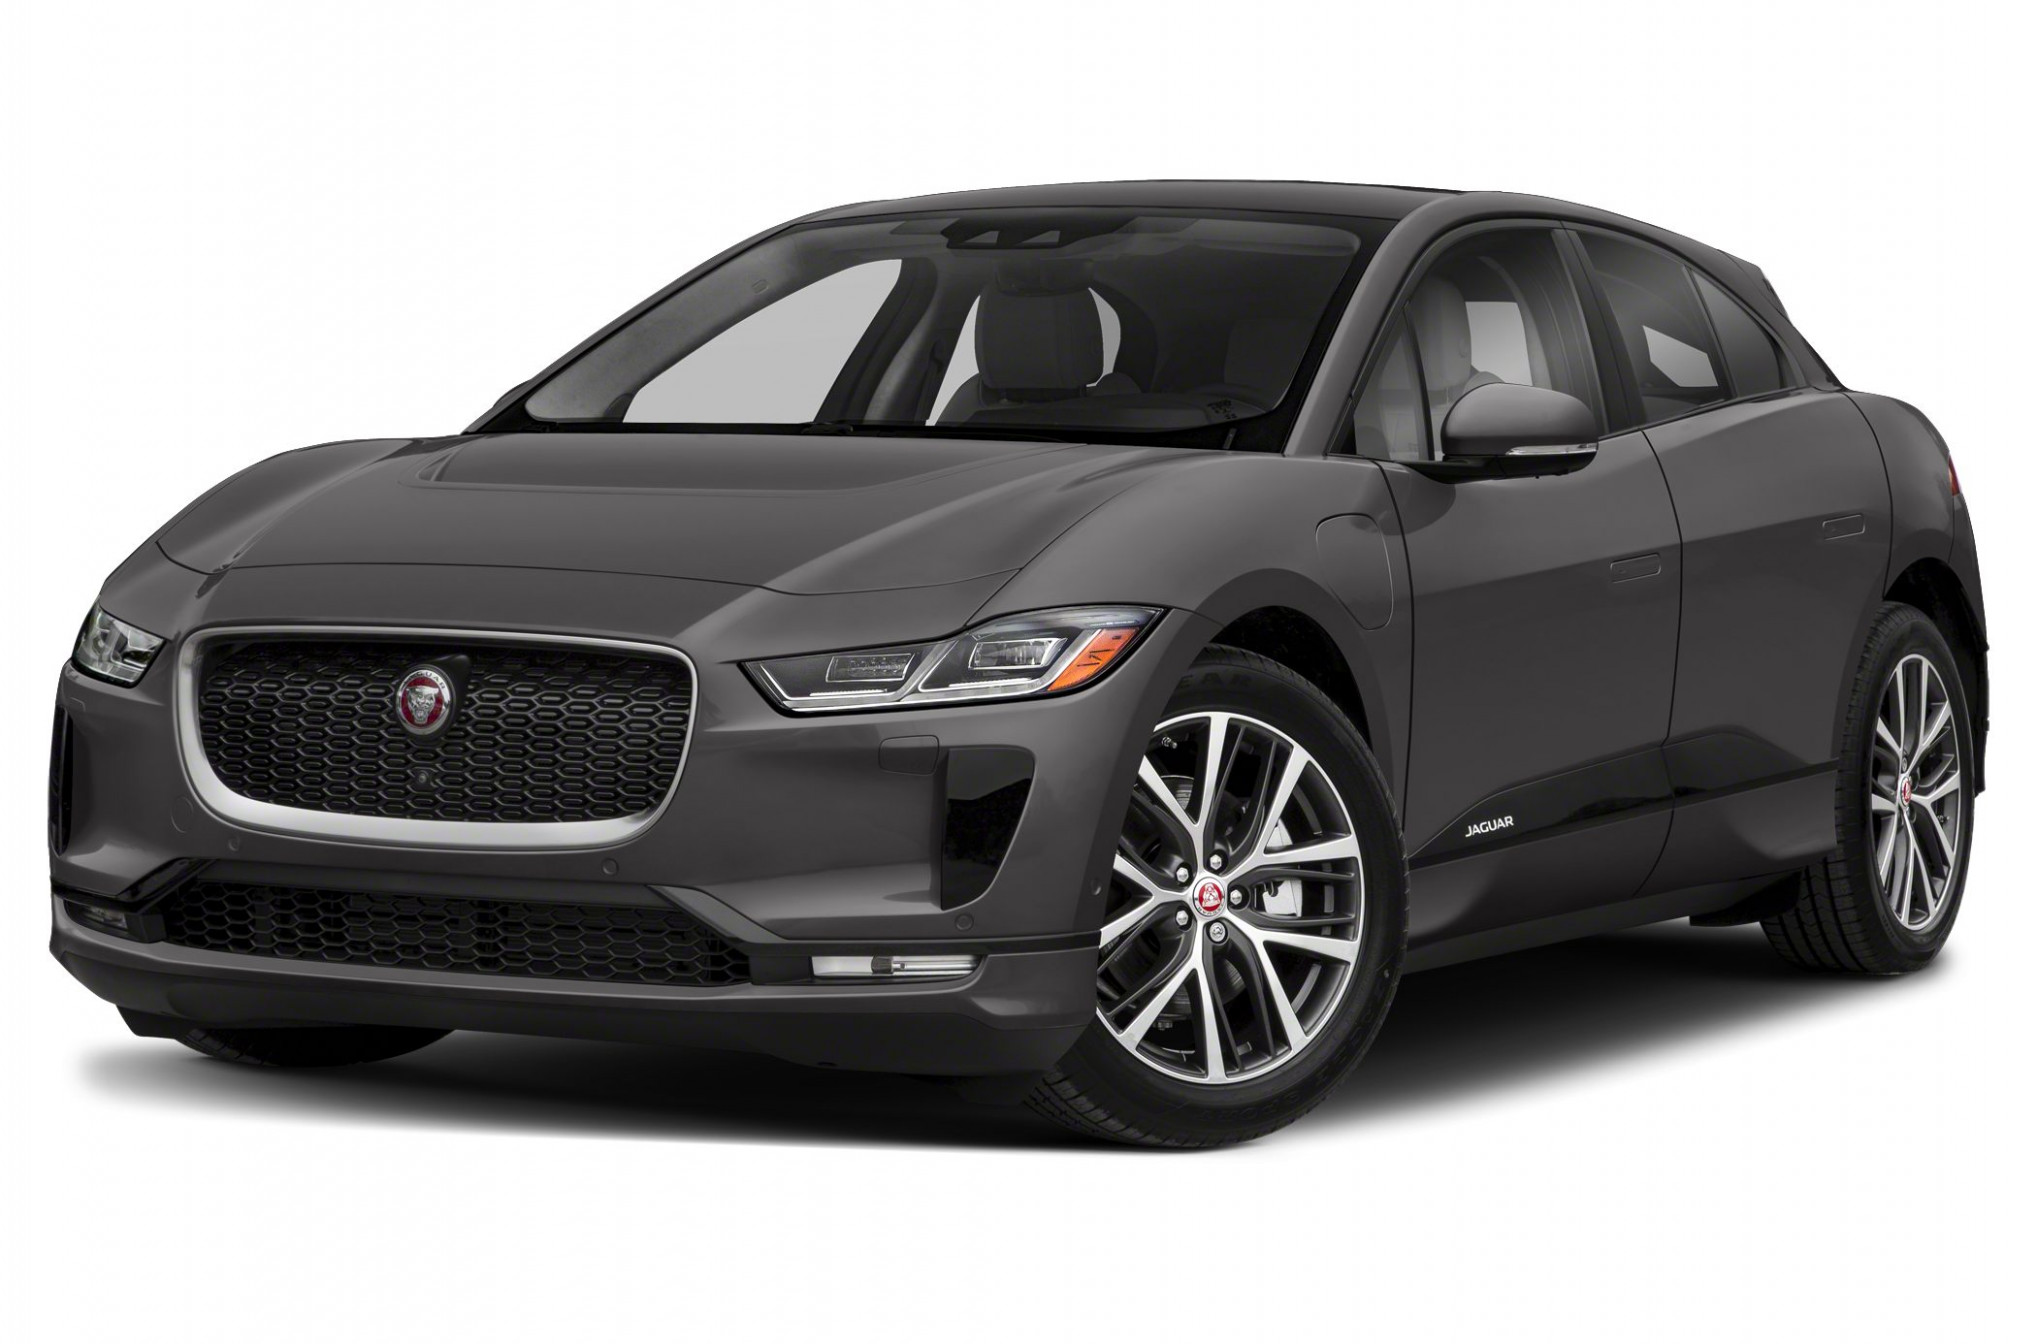 8 Jaguar I-PACE Pictures